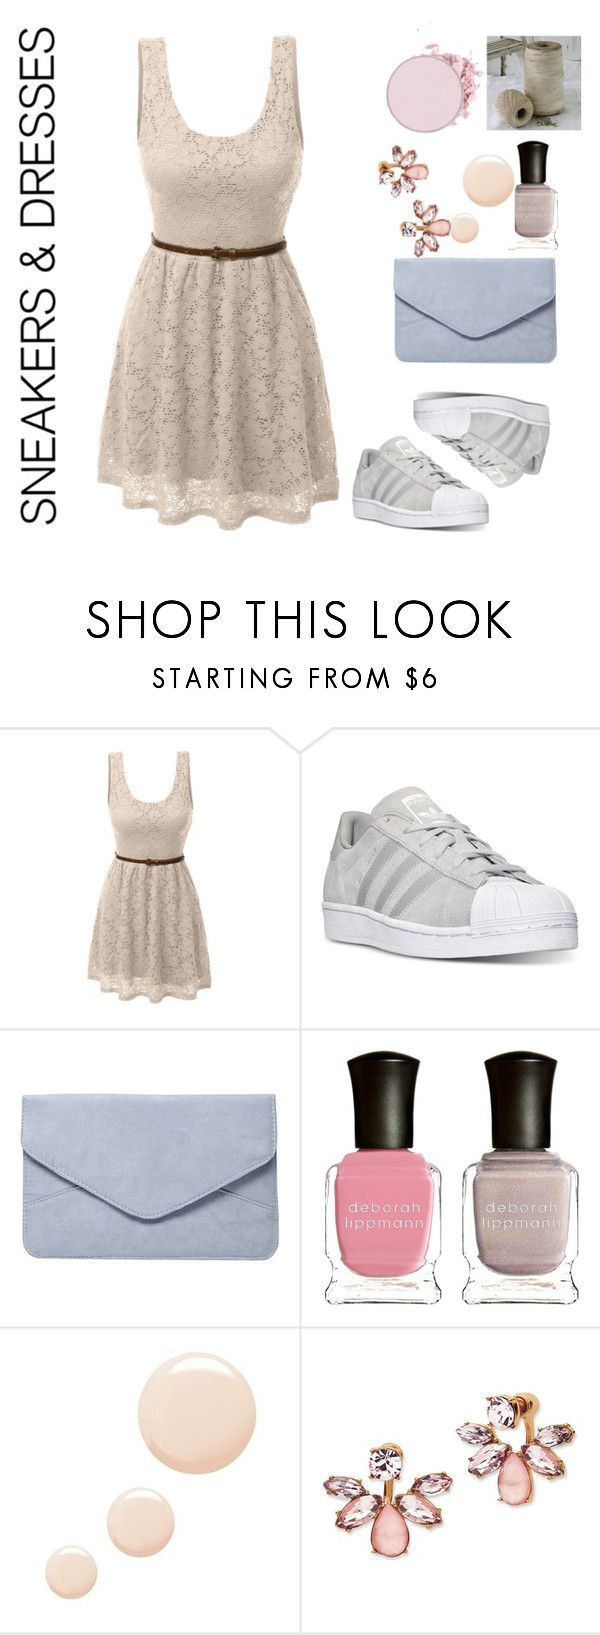 """sneakers and dress"" by ava-r-johnson on Polyvore featuring LE3NO, adidas, Dorothy Perkins, Deborah Lippmann, Topshop and Marchesa"